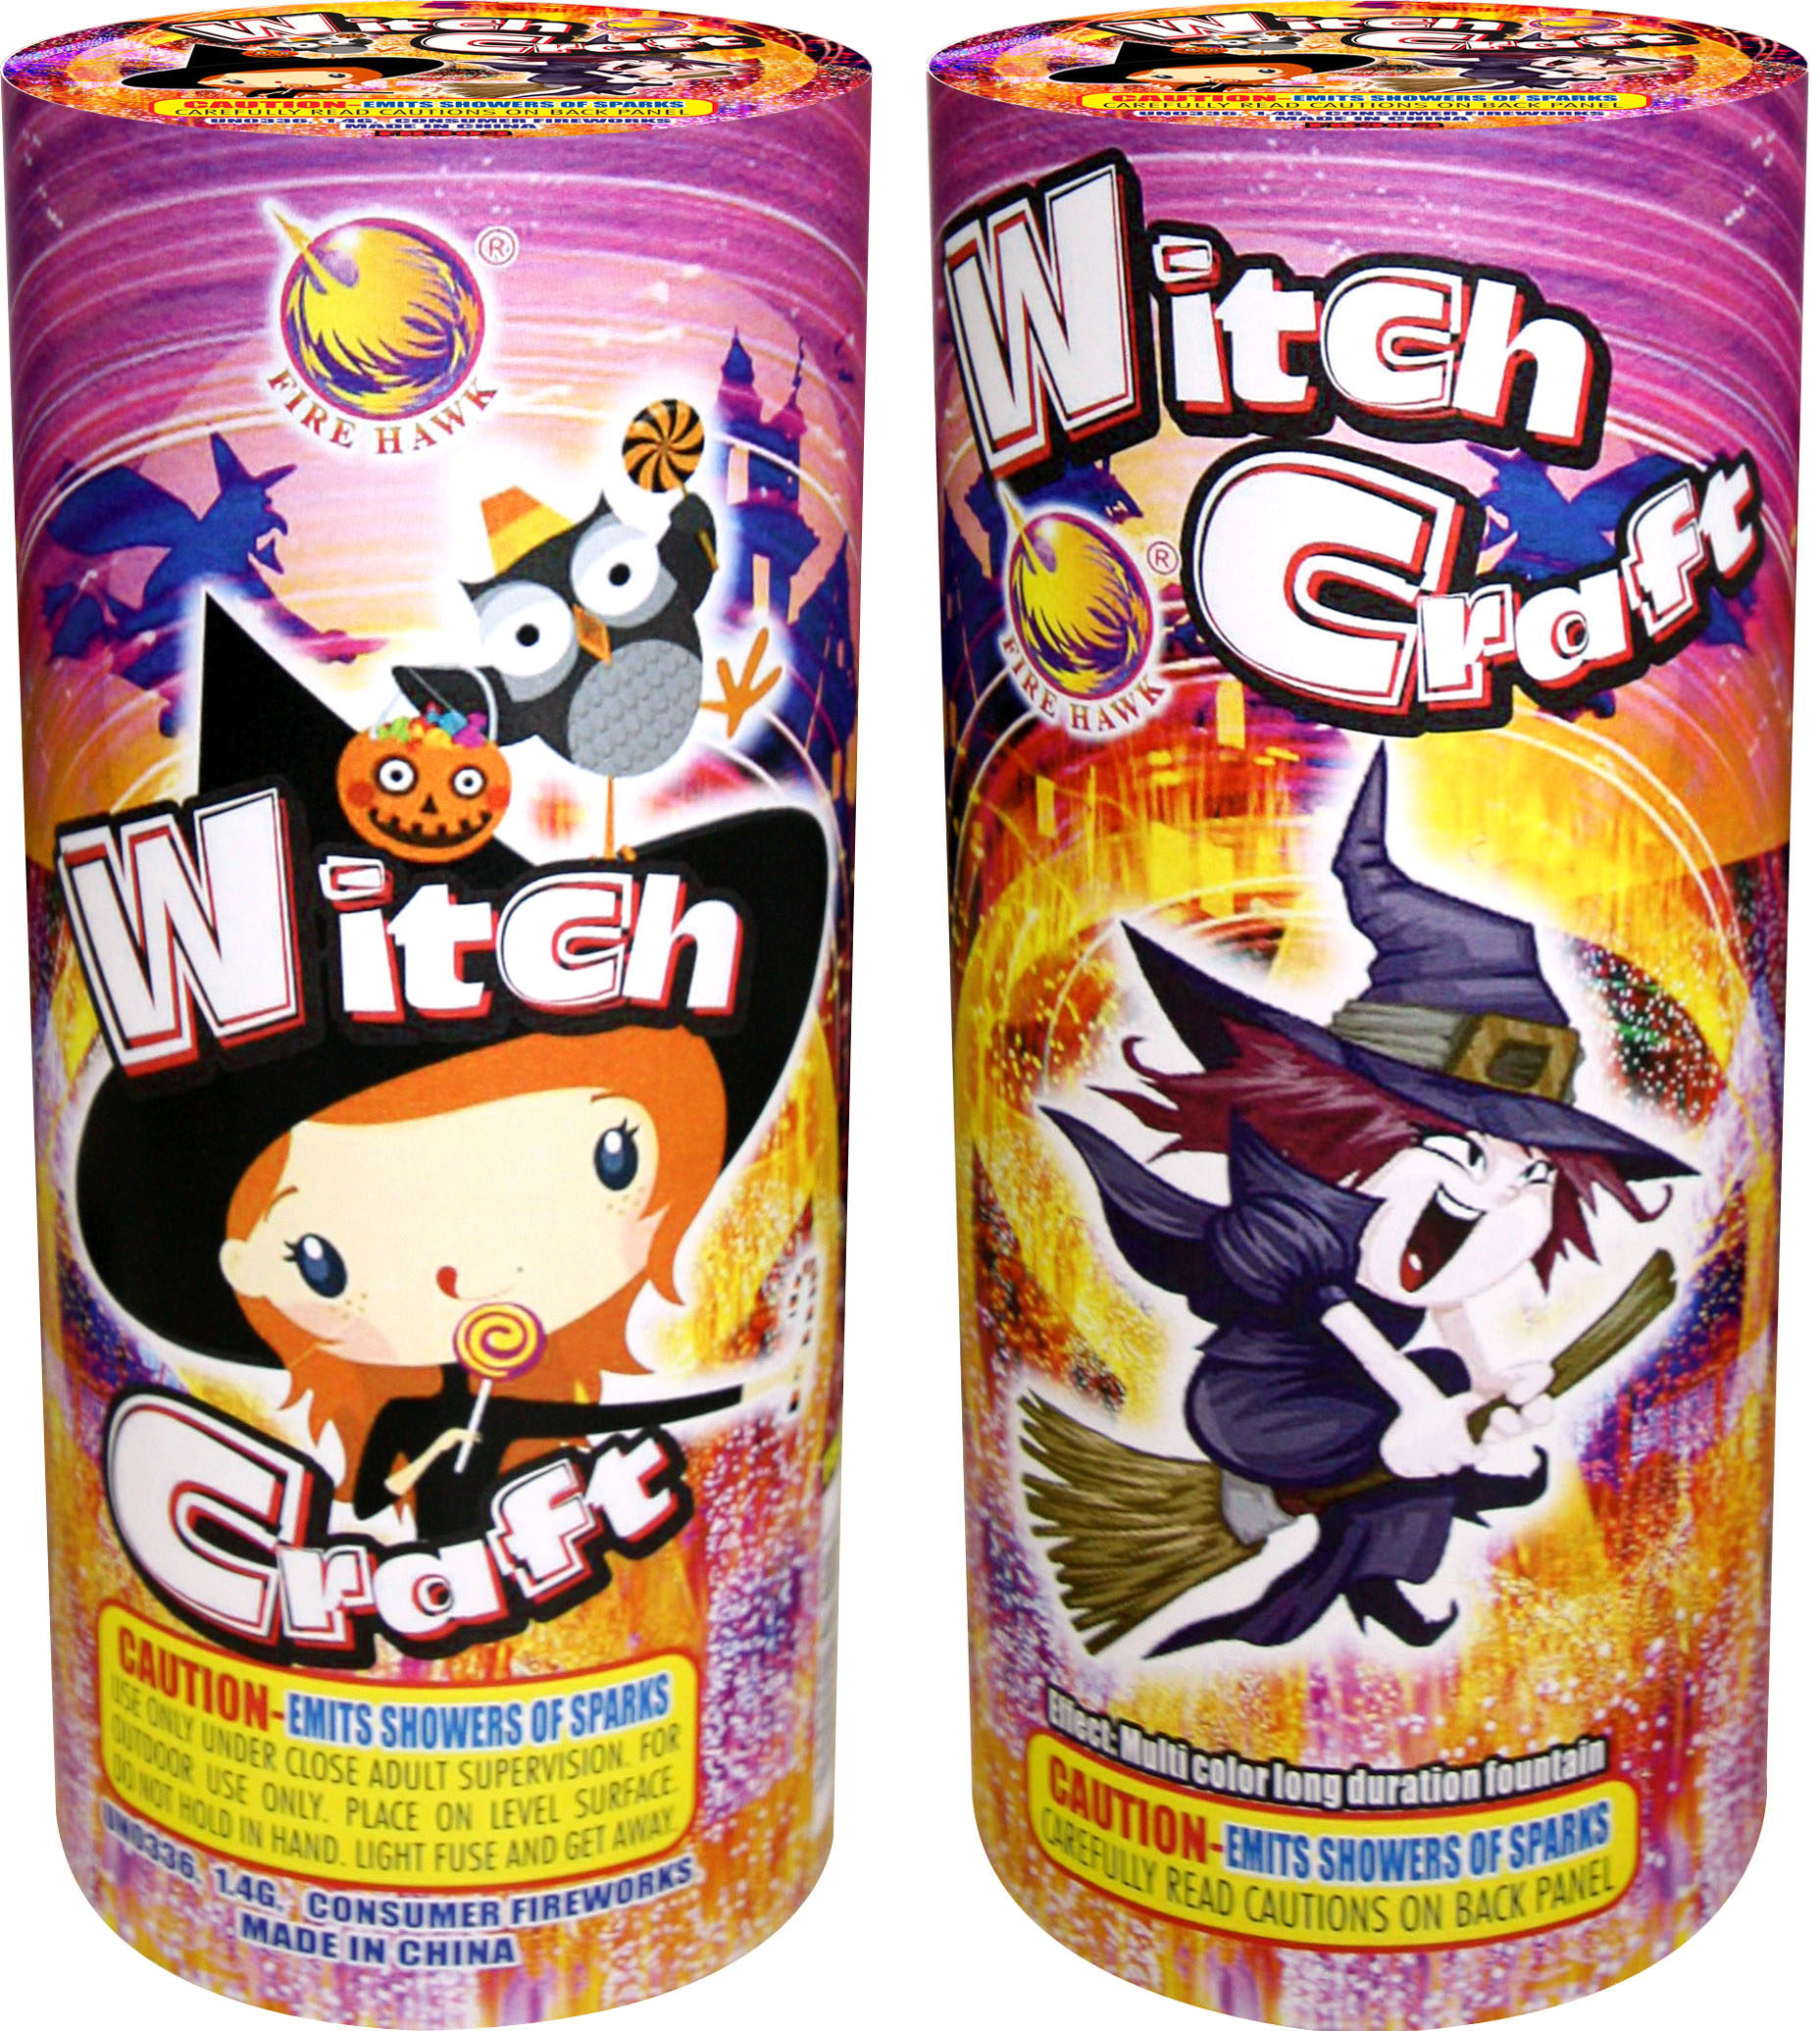 FB303 Witch Craft 2 in 1 - 複製